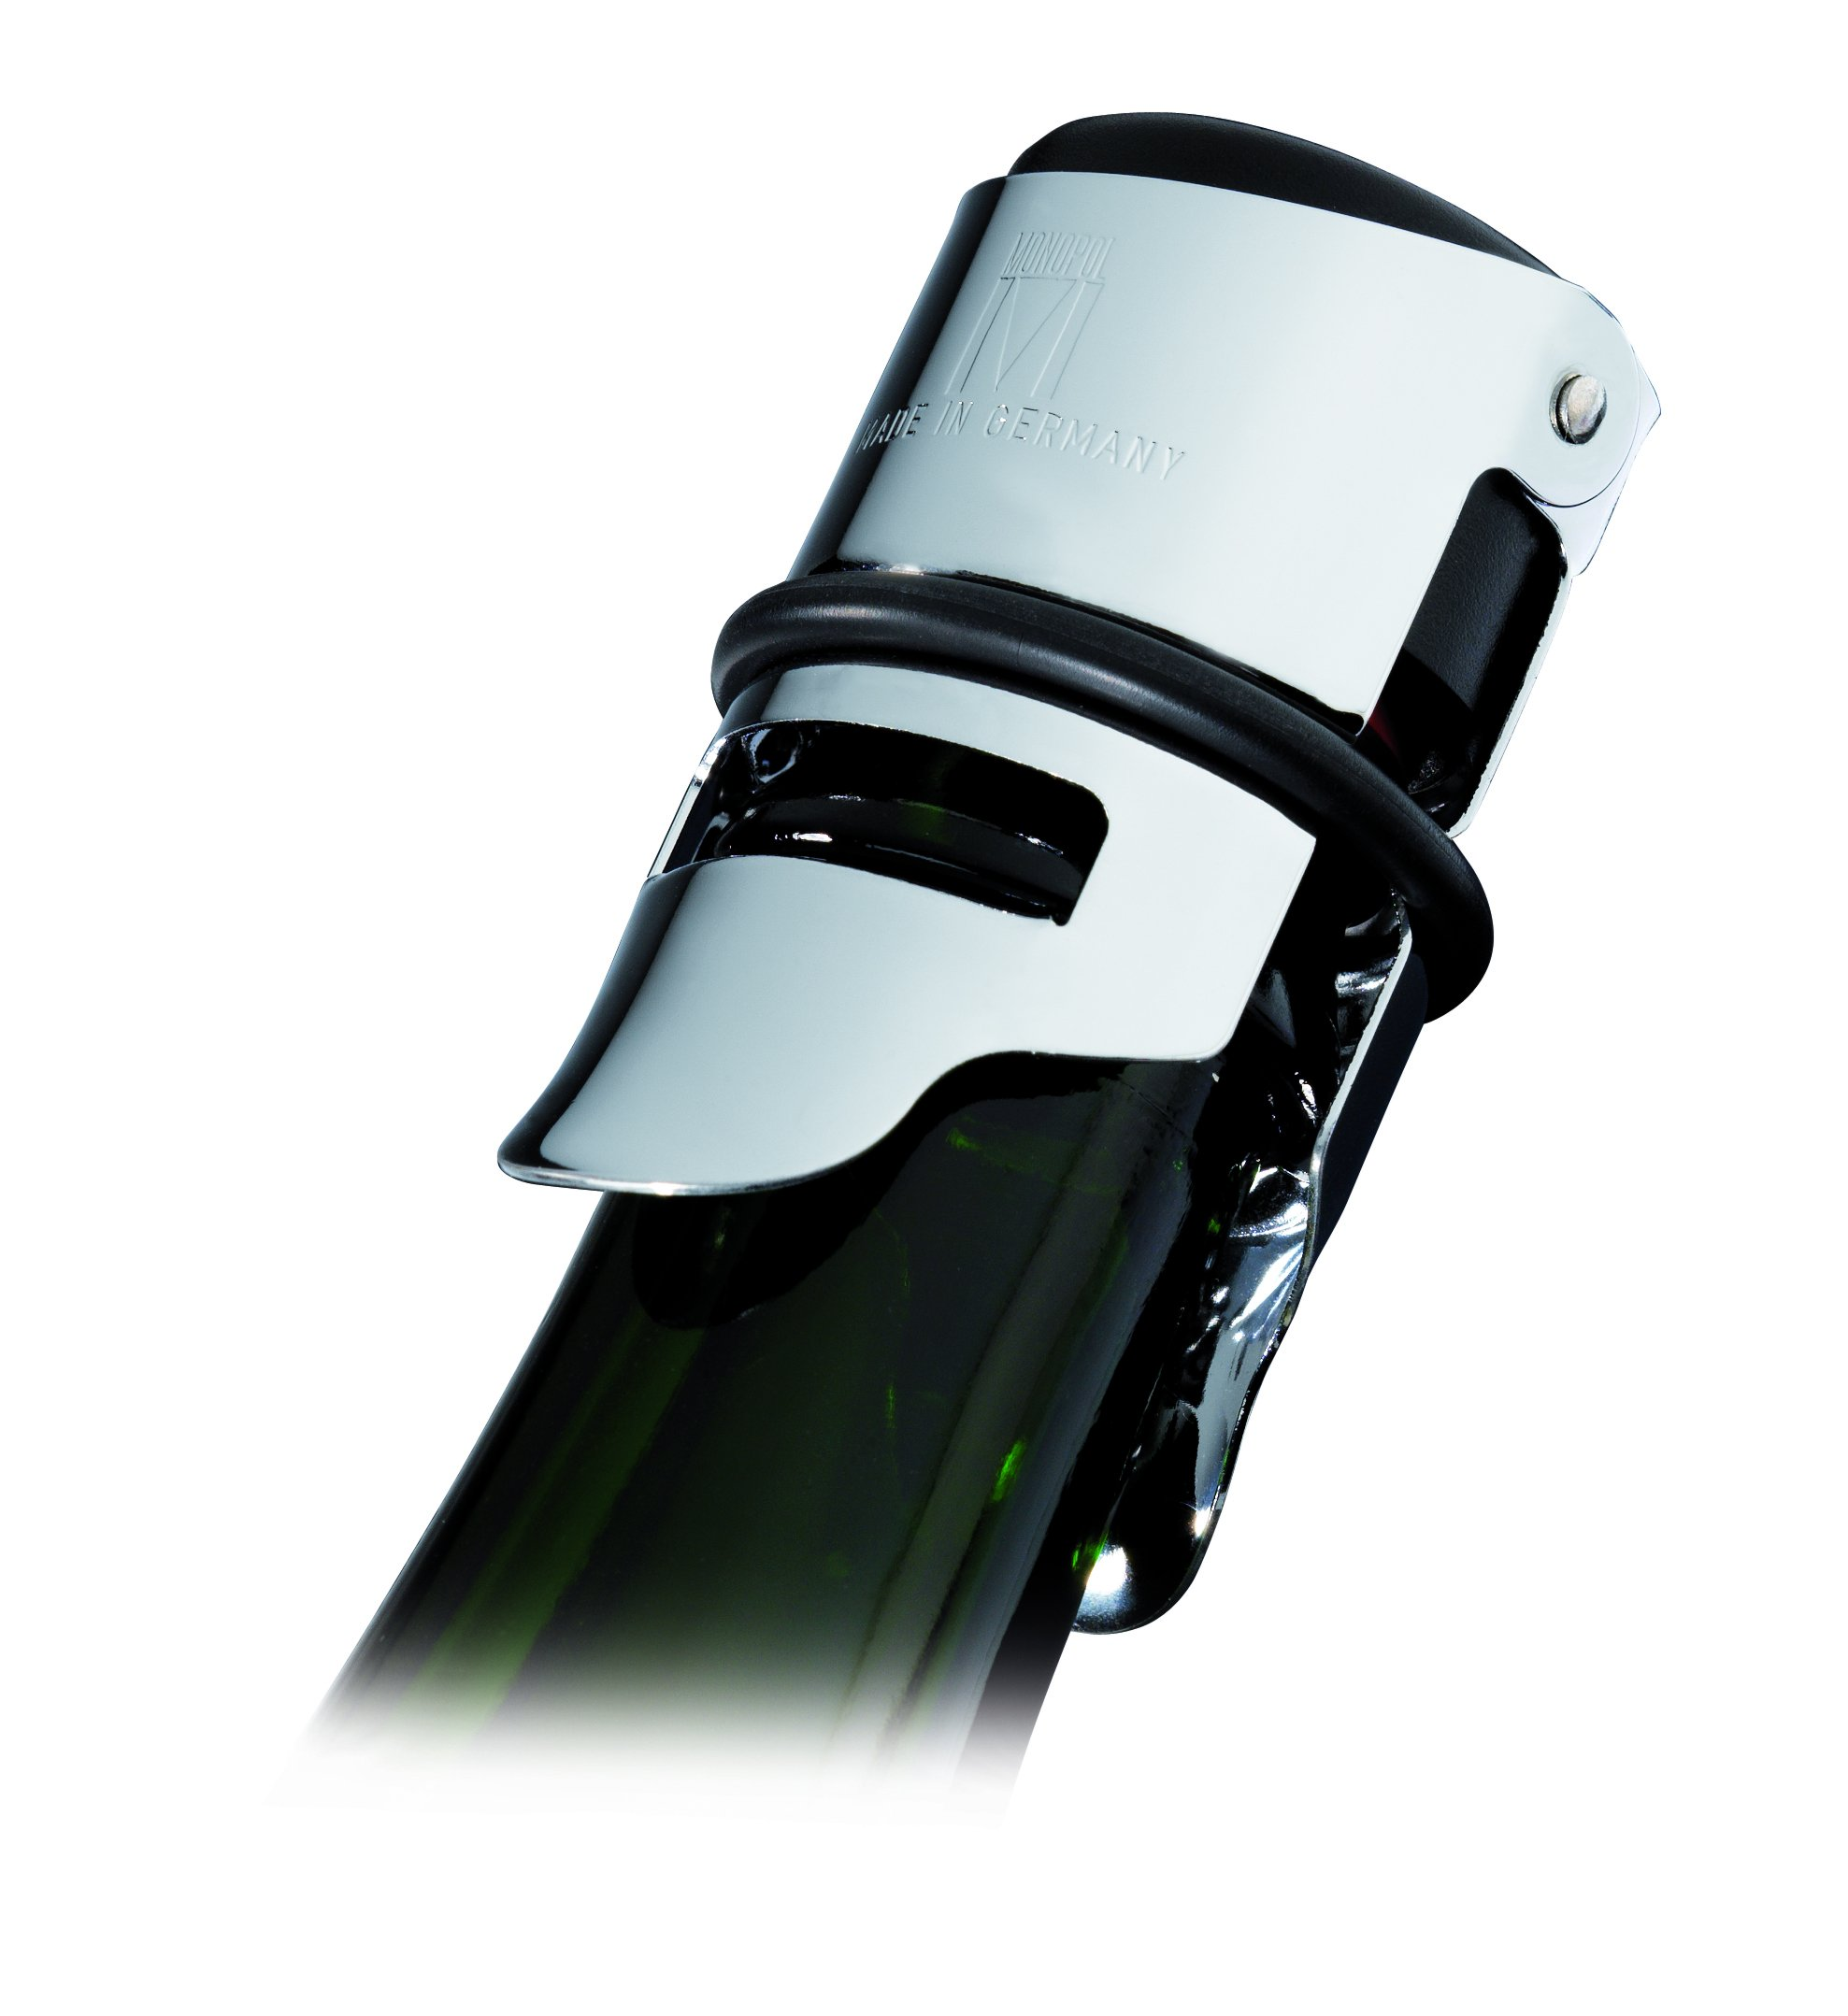 Westmark 6012556C Monopol Champagne Stopper Tightly Closing And Can Be Stored Horizontally, Silver by Westmark